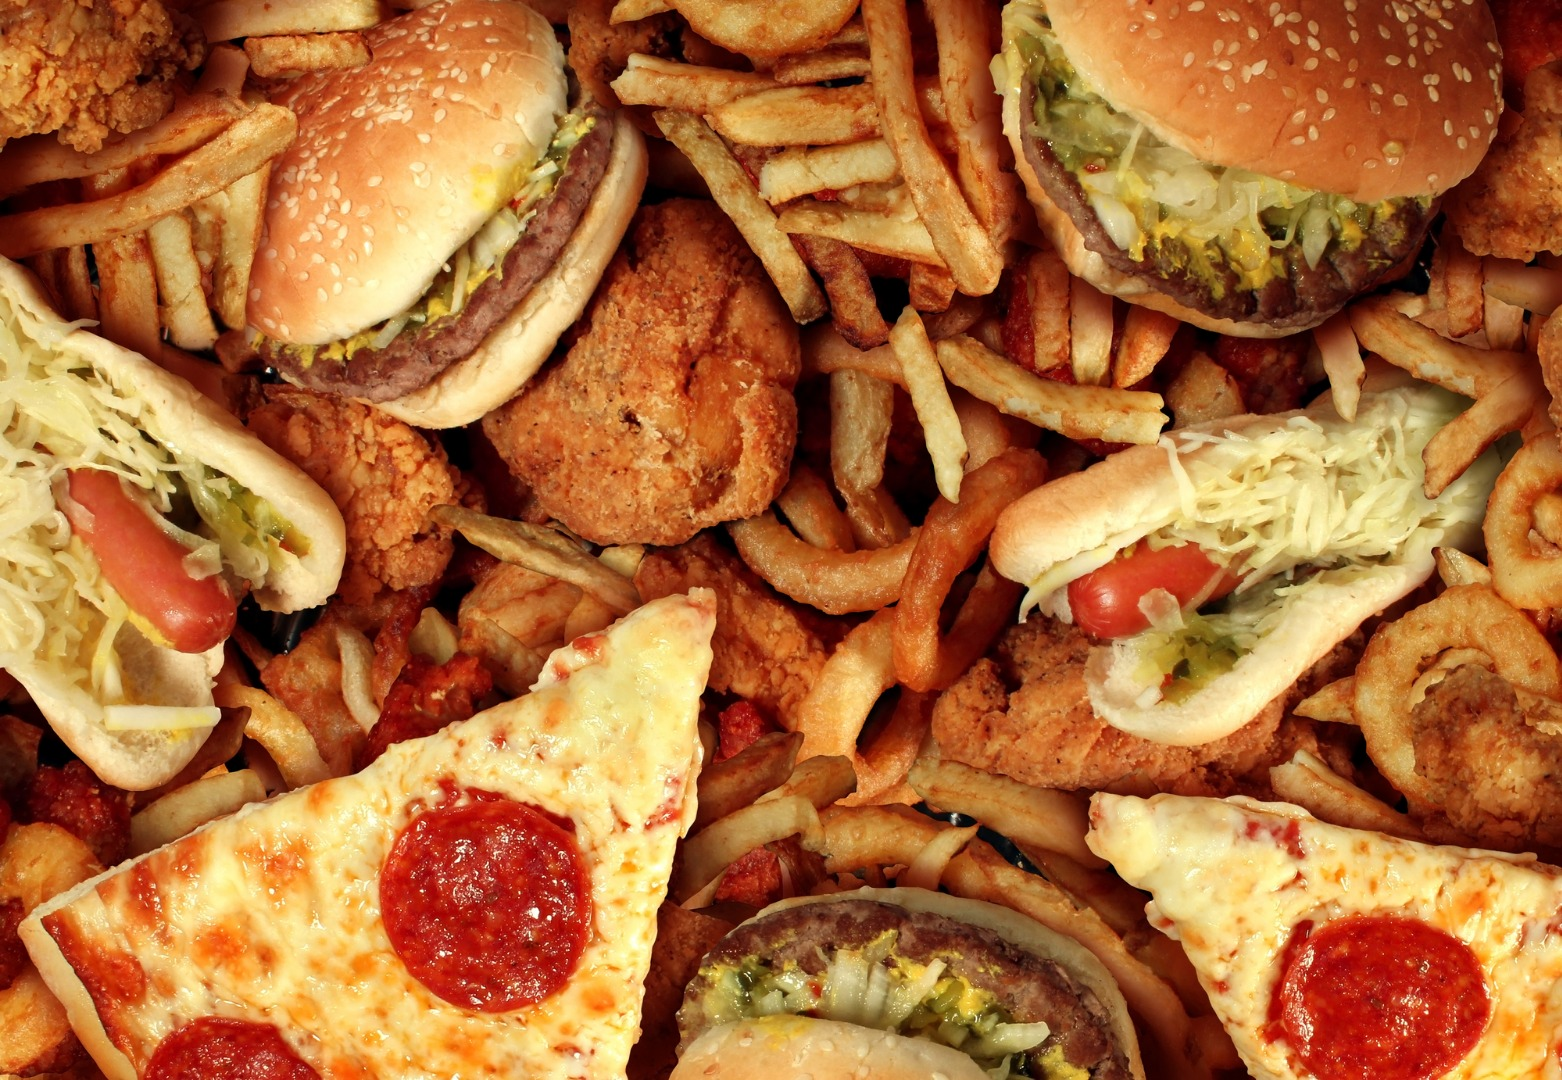 New discovery explains how fatty food disrupts appetite control, causing obesity